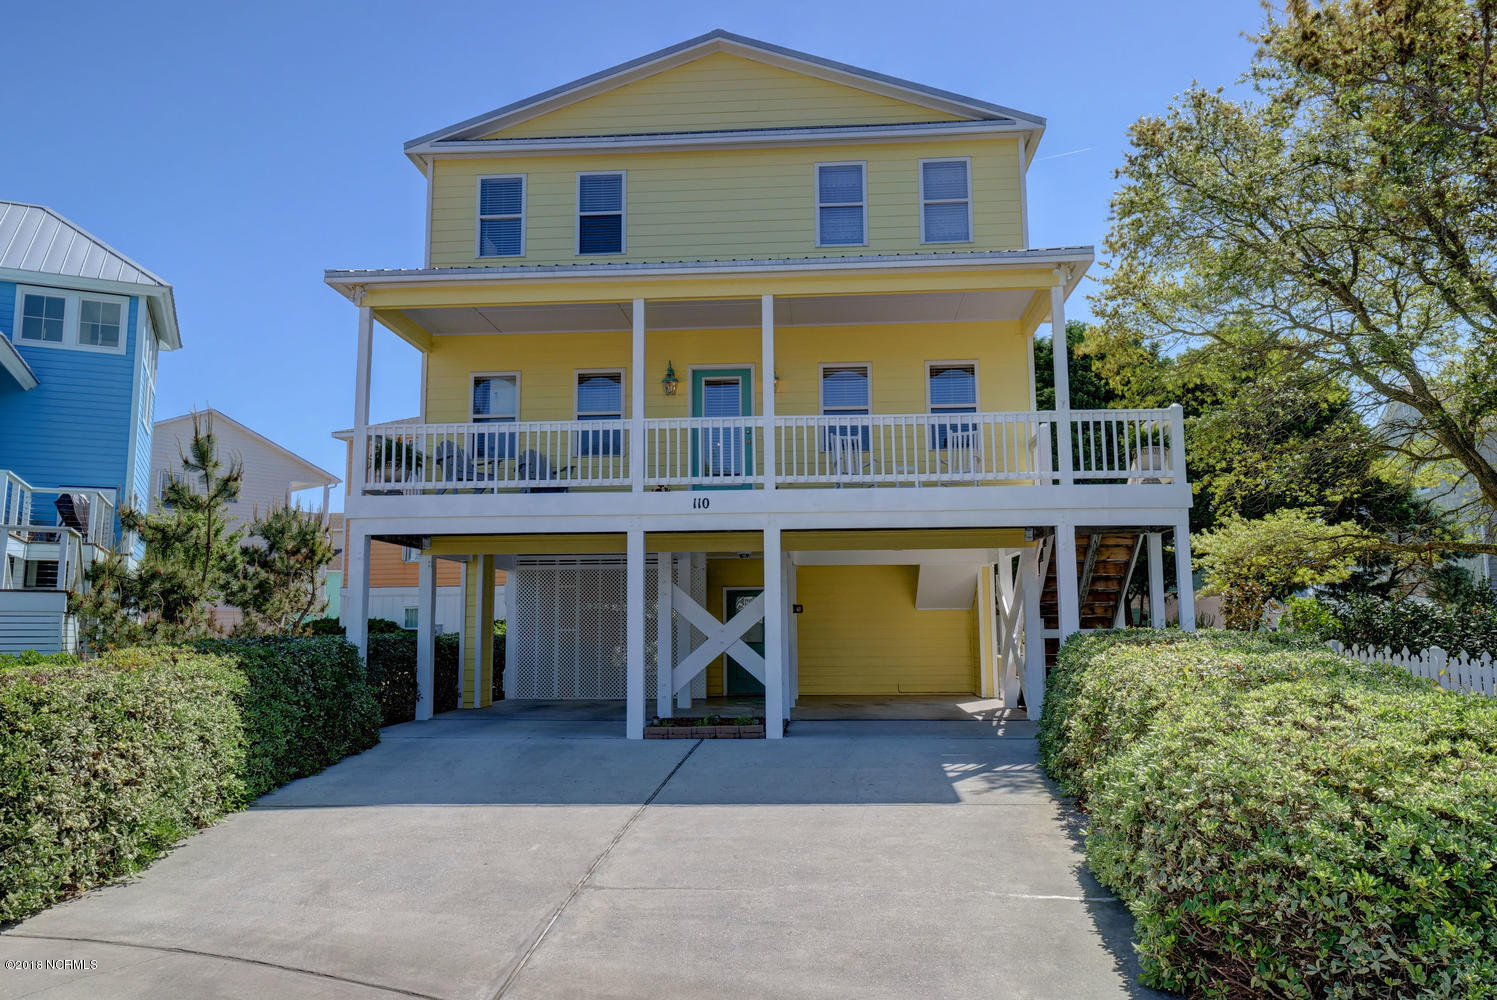 Property for sale at 110 Leeward Court, Kure Beach,  NC 28449